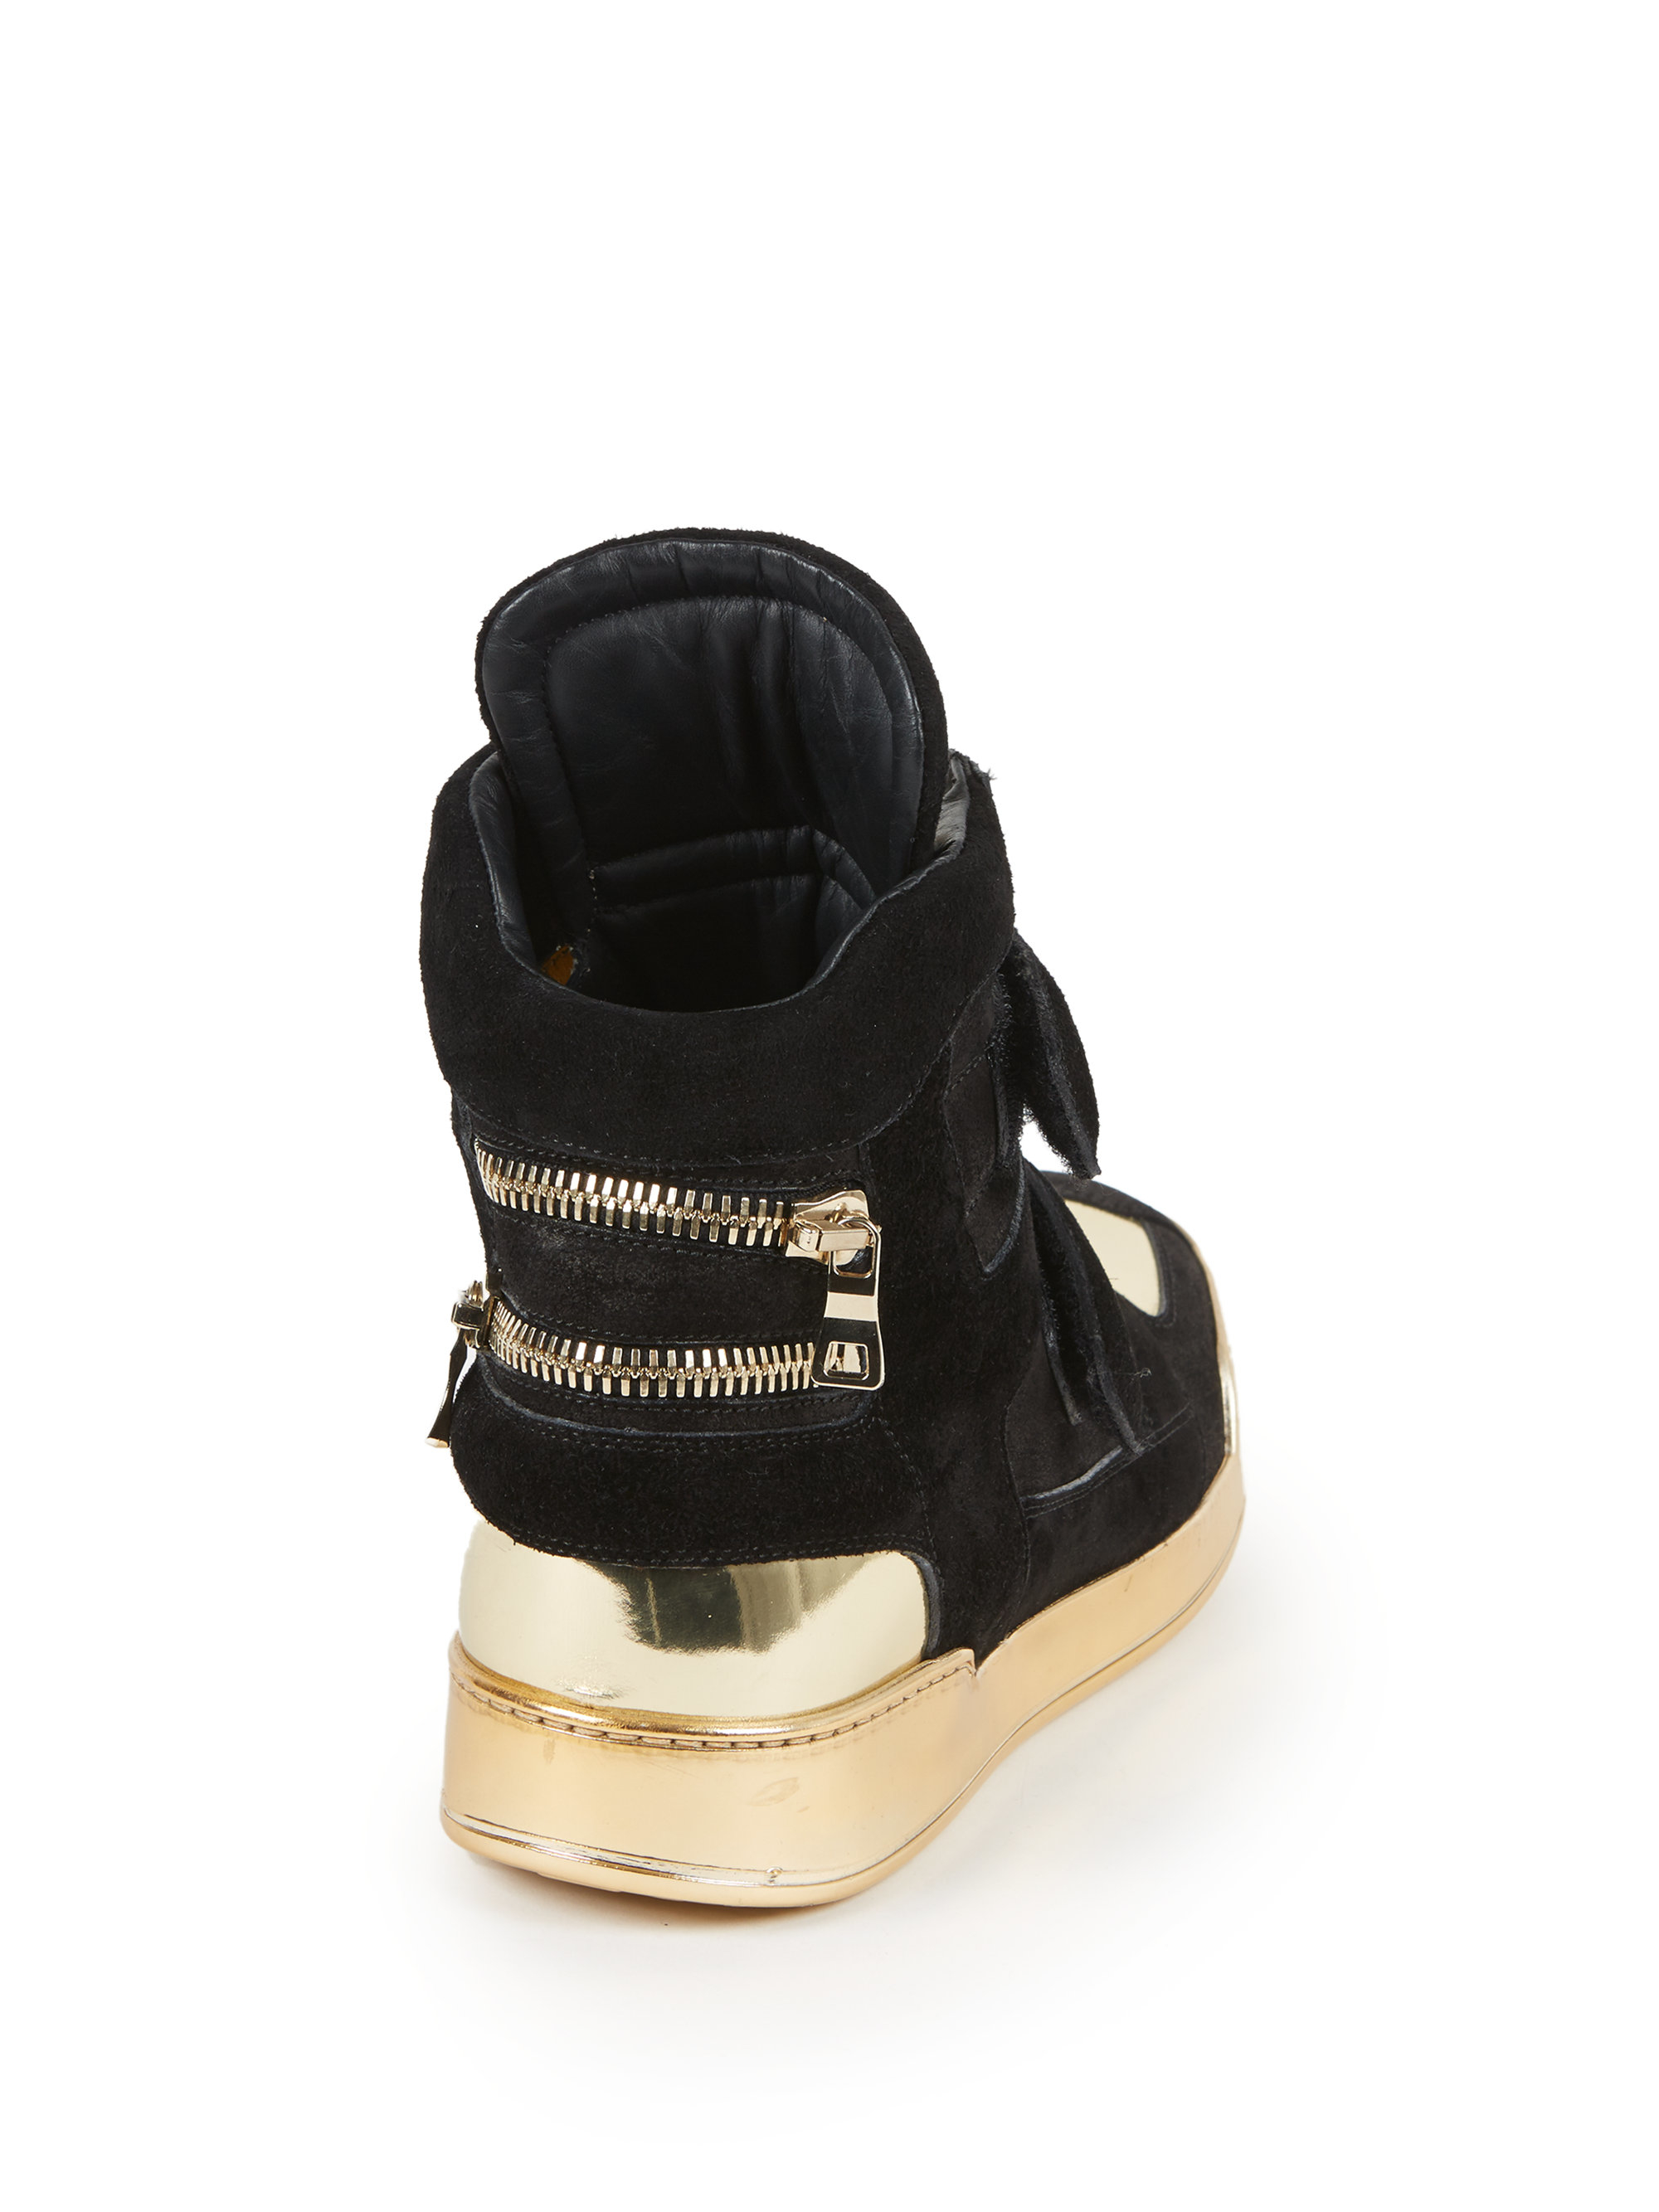 Balmain zip detal low-top sneakers latest collections cheap sale classic XQBE2sssi